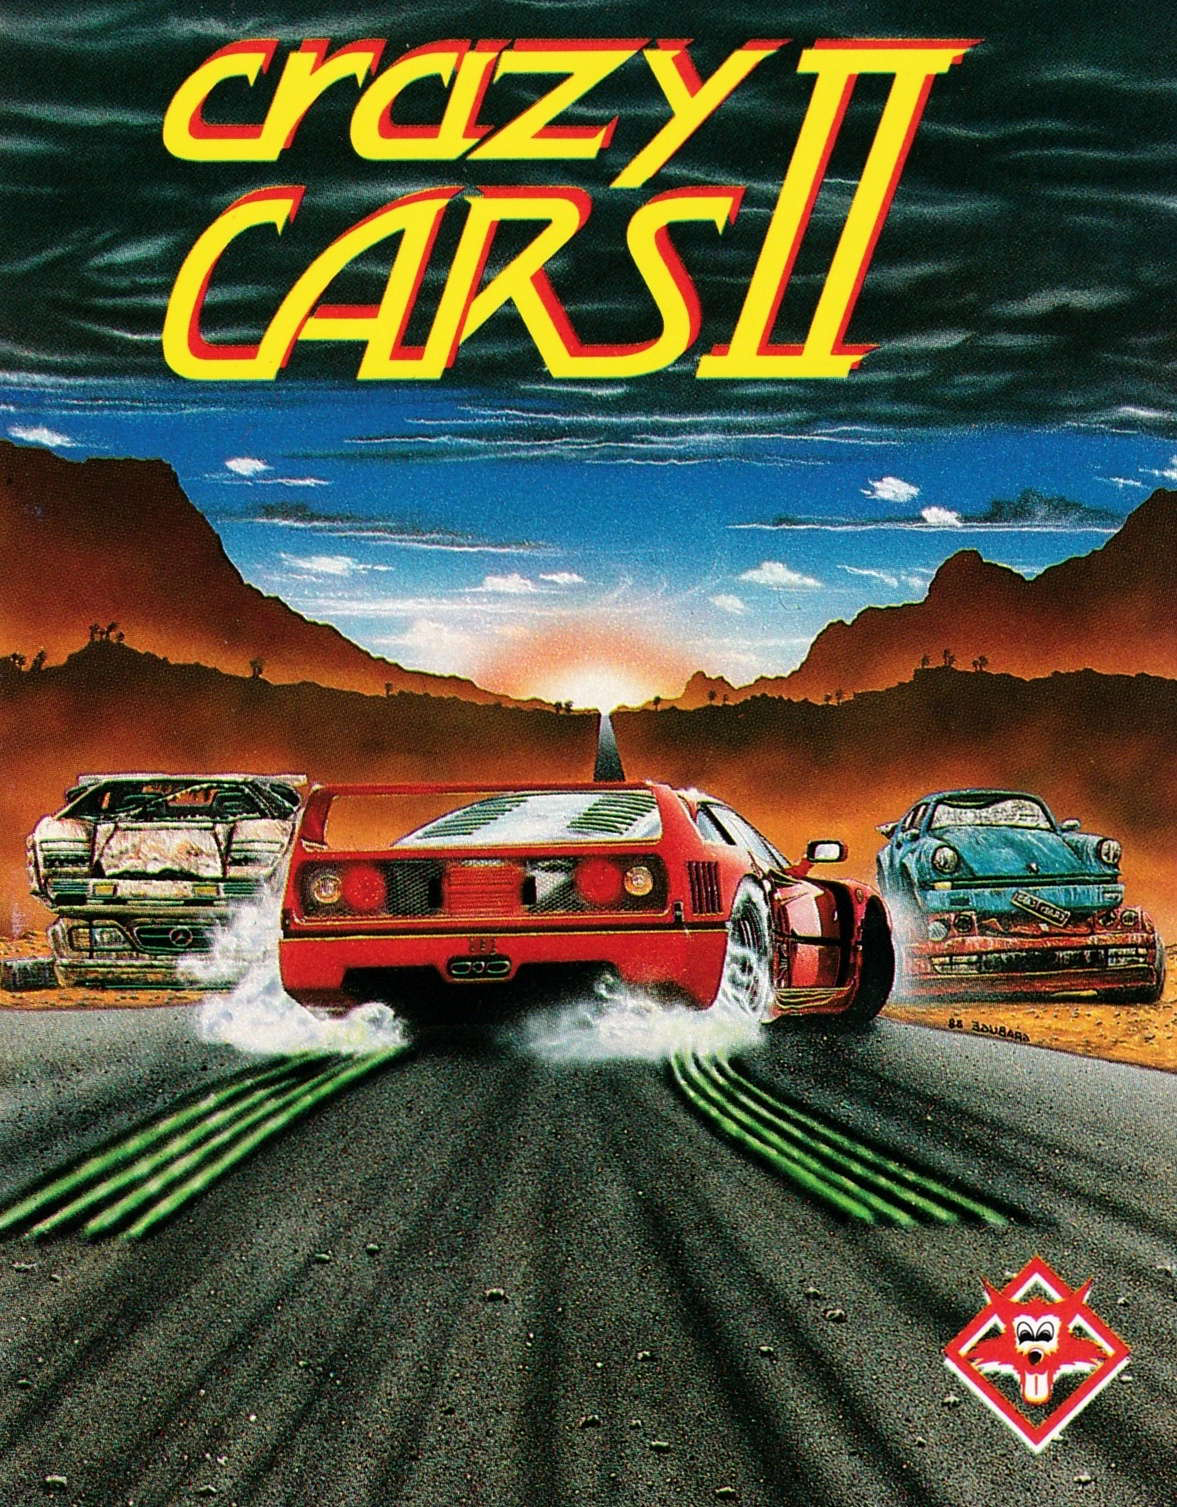 cover of the Amstrad CPC game Crazy Cars II  by GameBase CPC